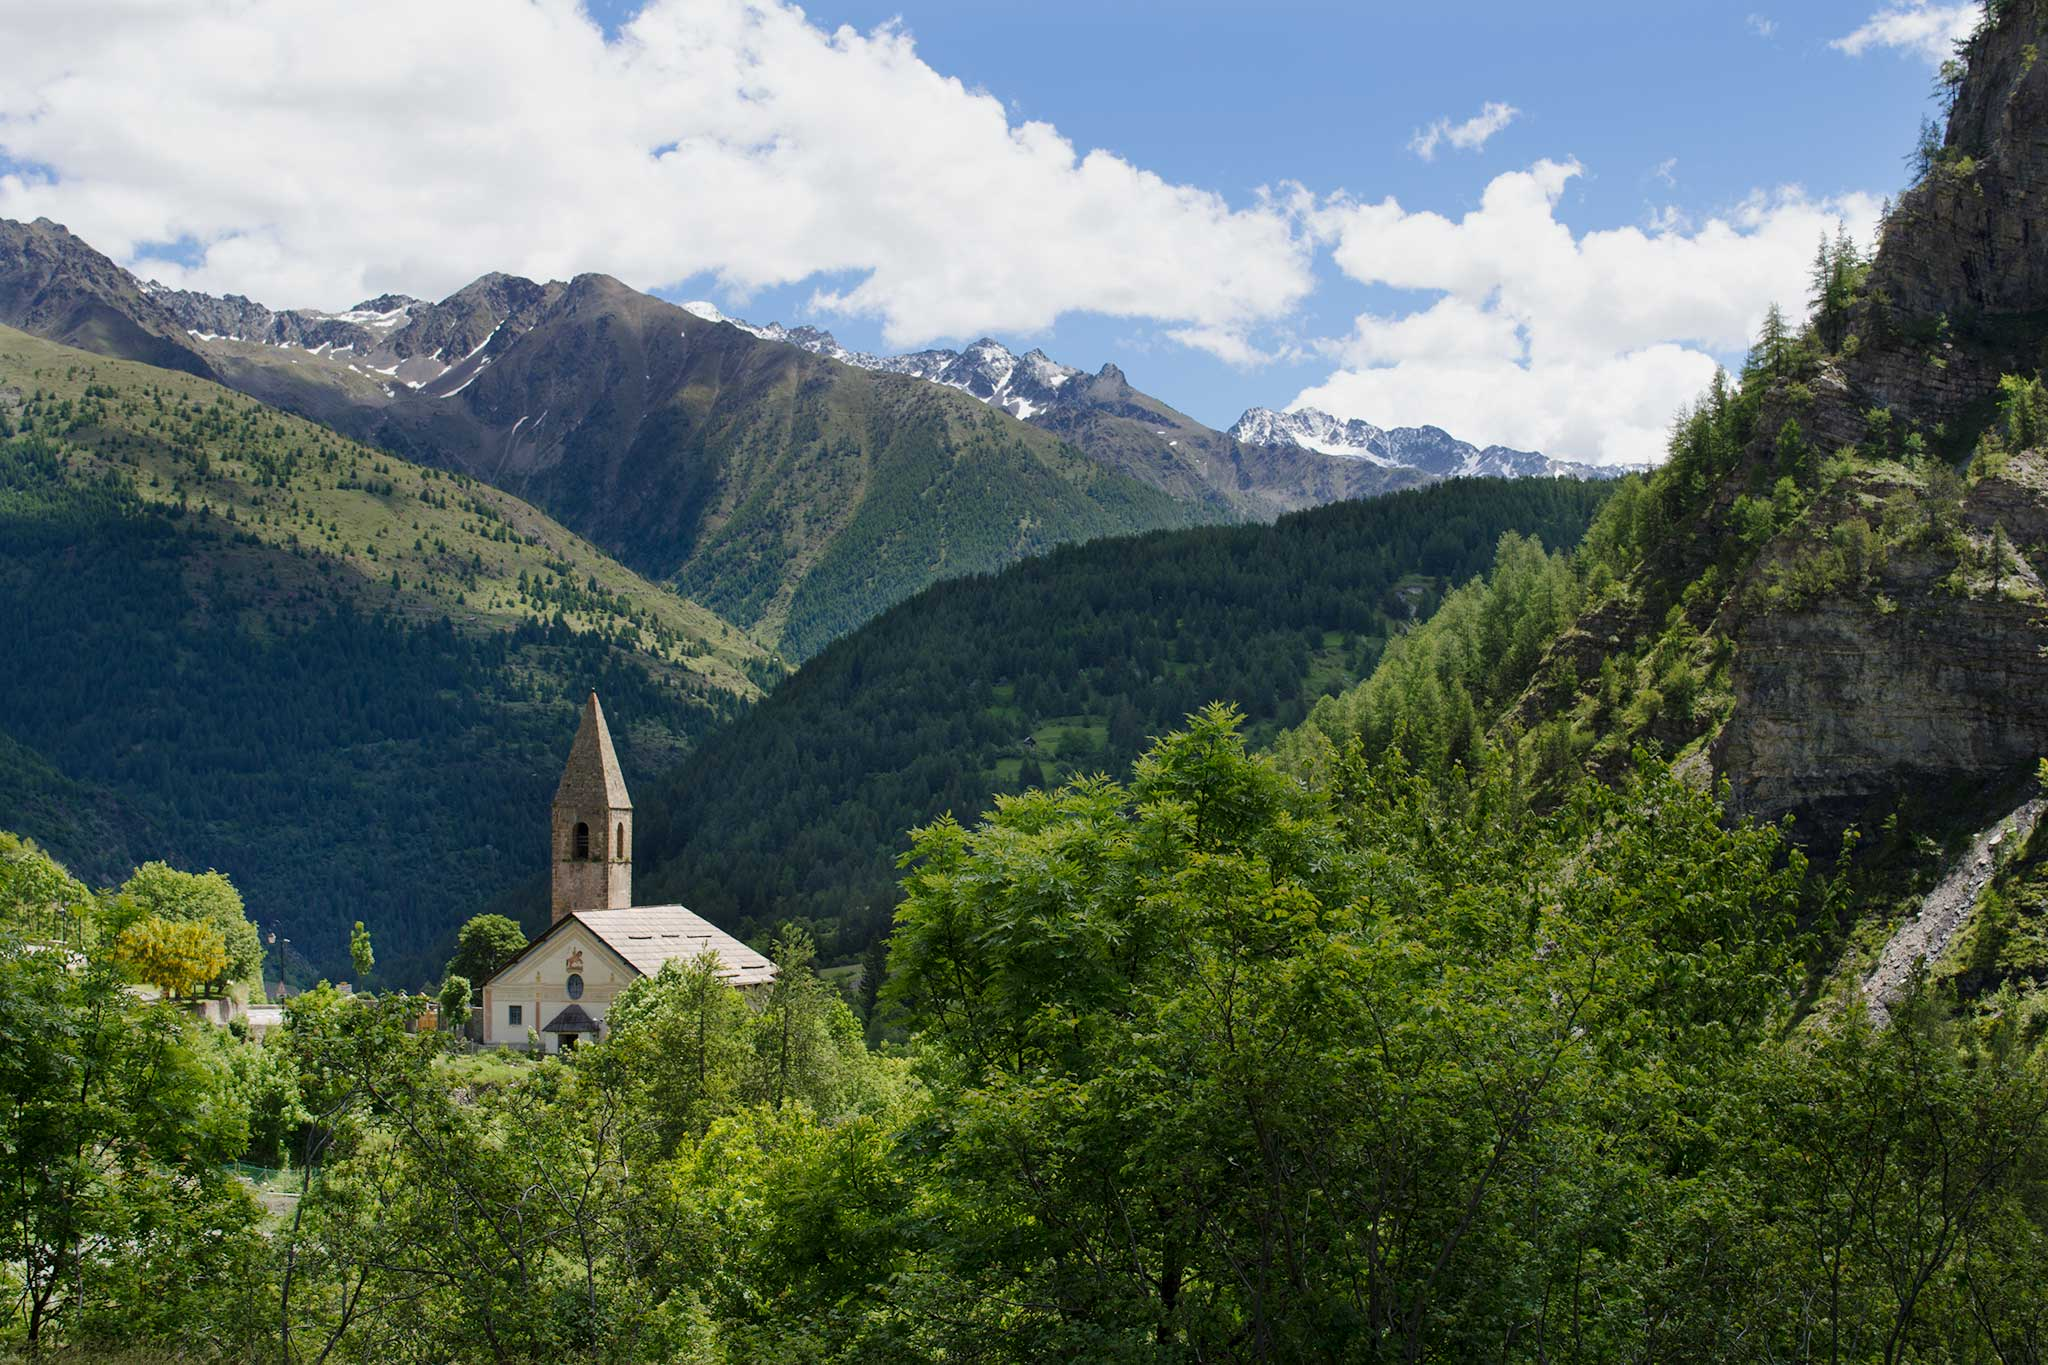 Steve and Carole in Vence - The Tinée Valley - Alpine Forests and Perched Villages